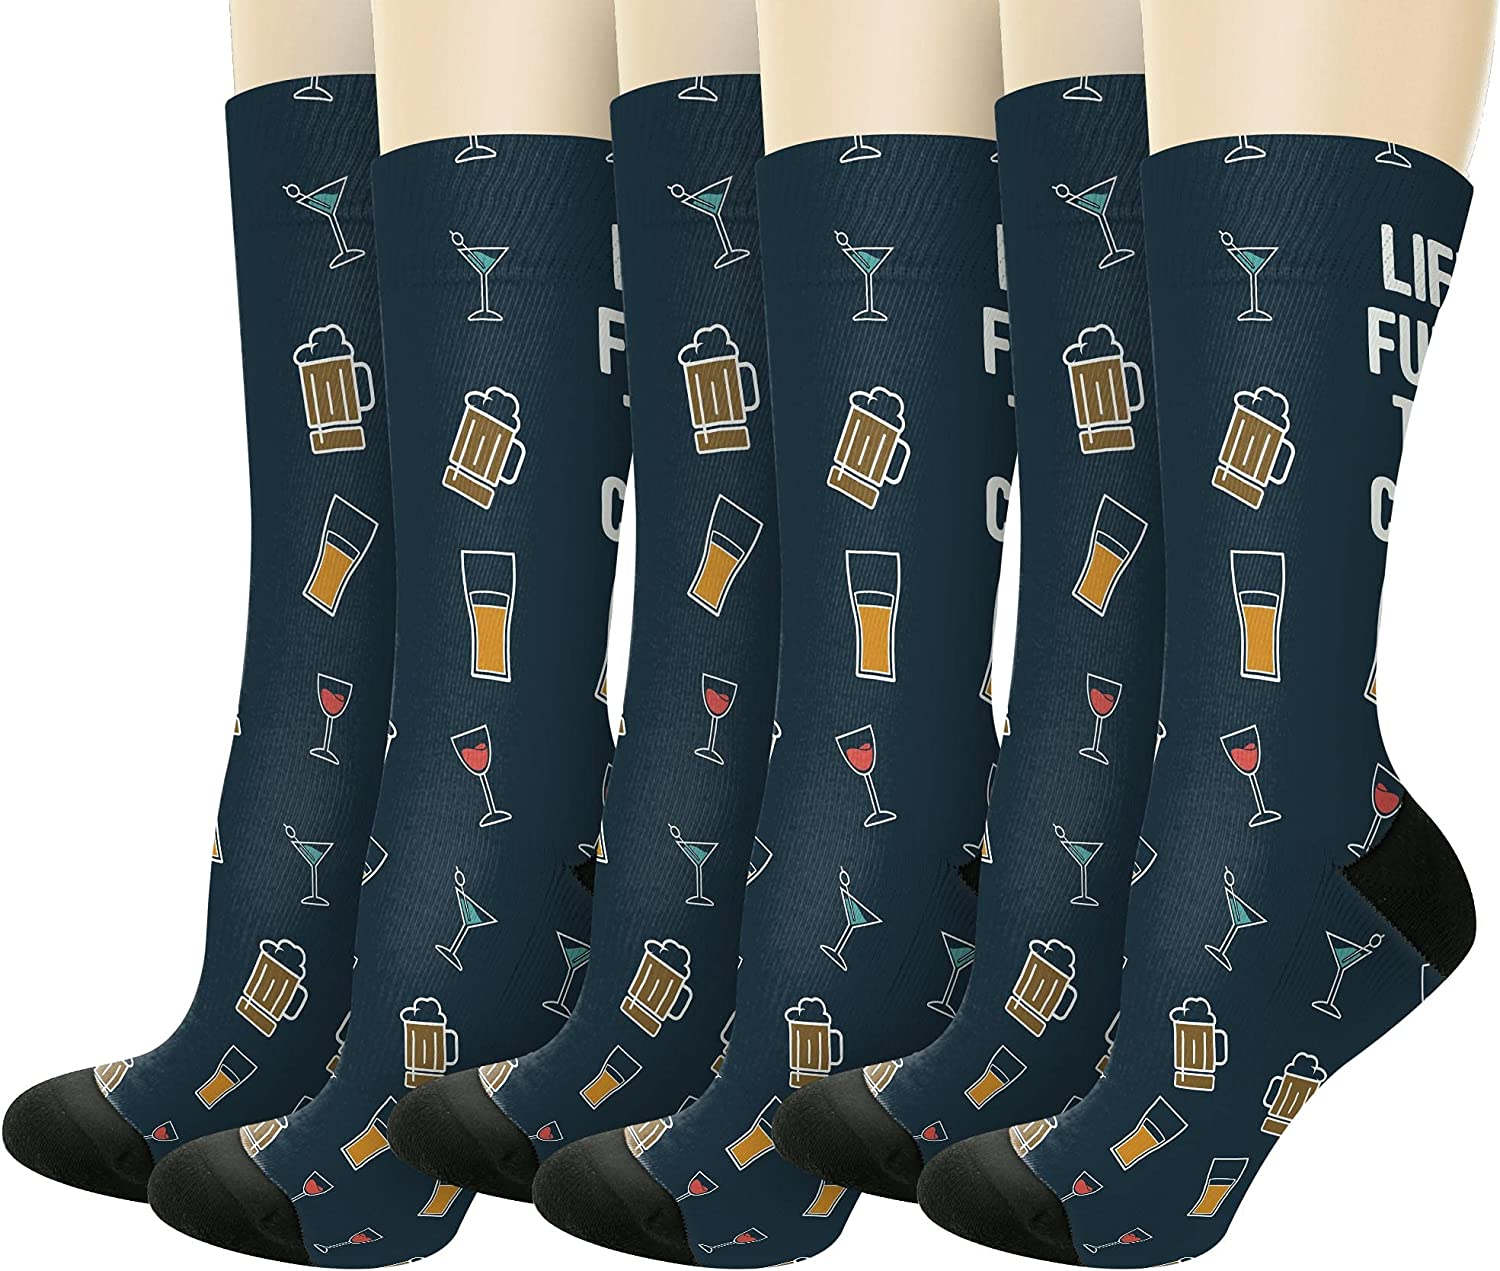 Life Is Full Of Tough Choices Adult Beverages Novelty Crew Socks